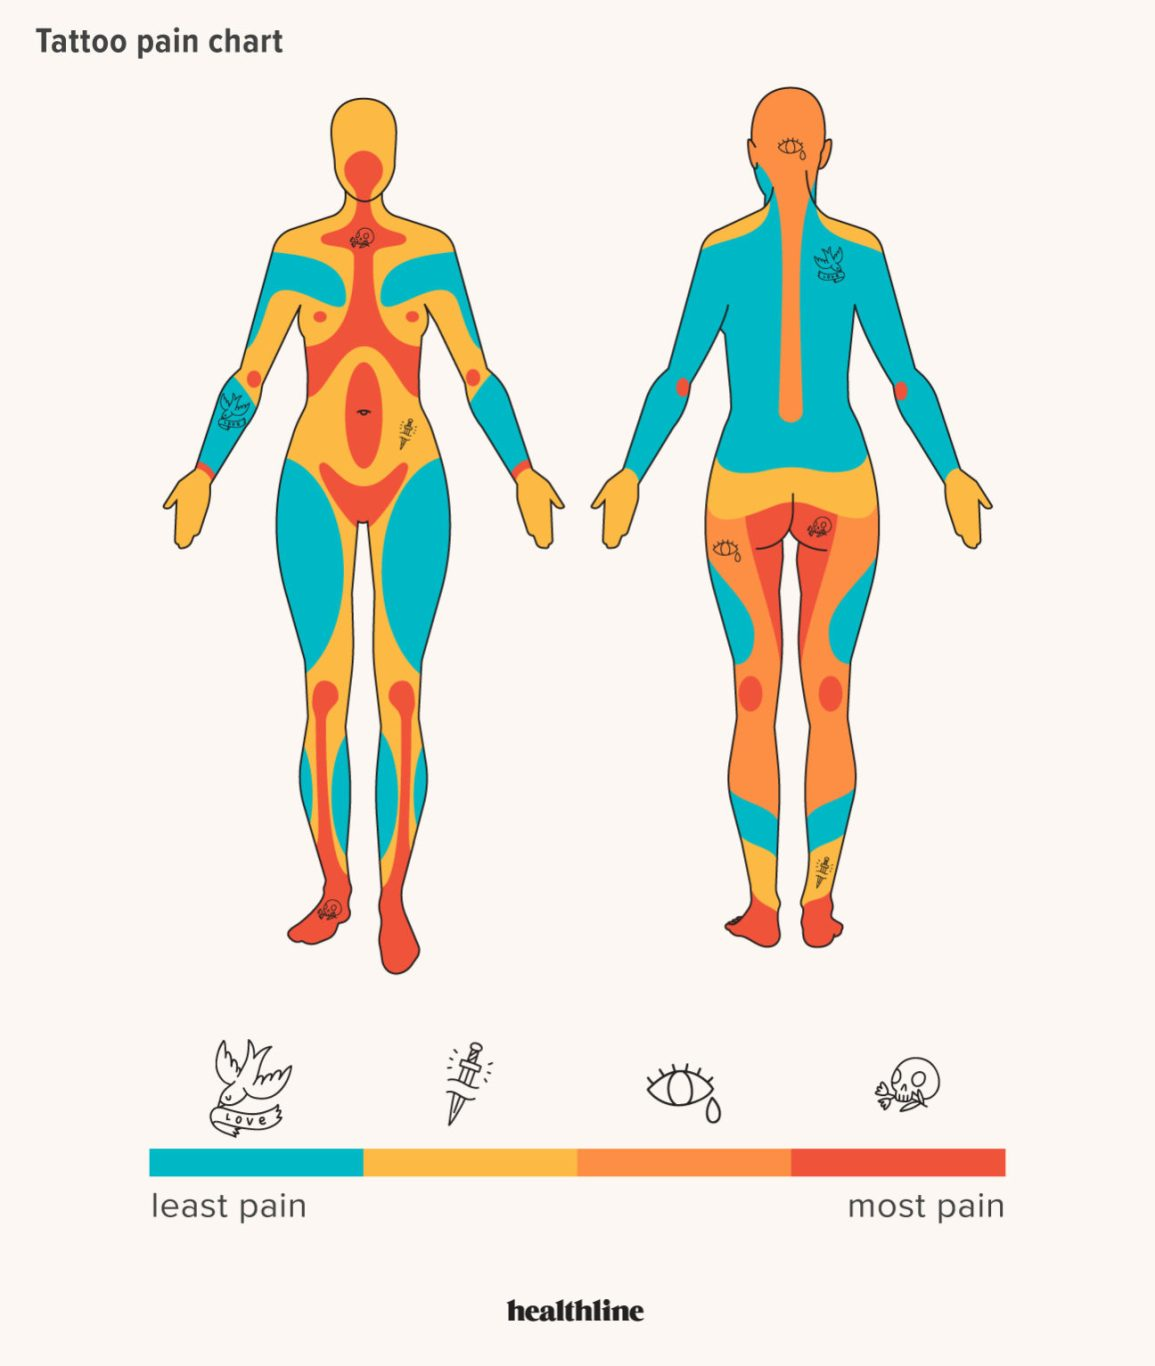 Tattoo Locations On Body: Tattoo Pain Chart: Where It Hurts Most And Least, And More